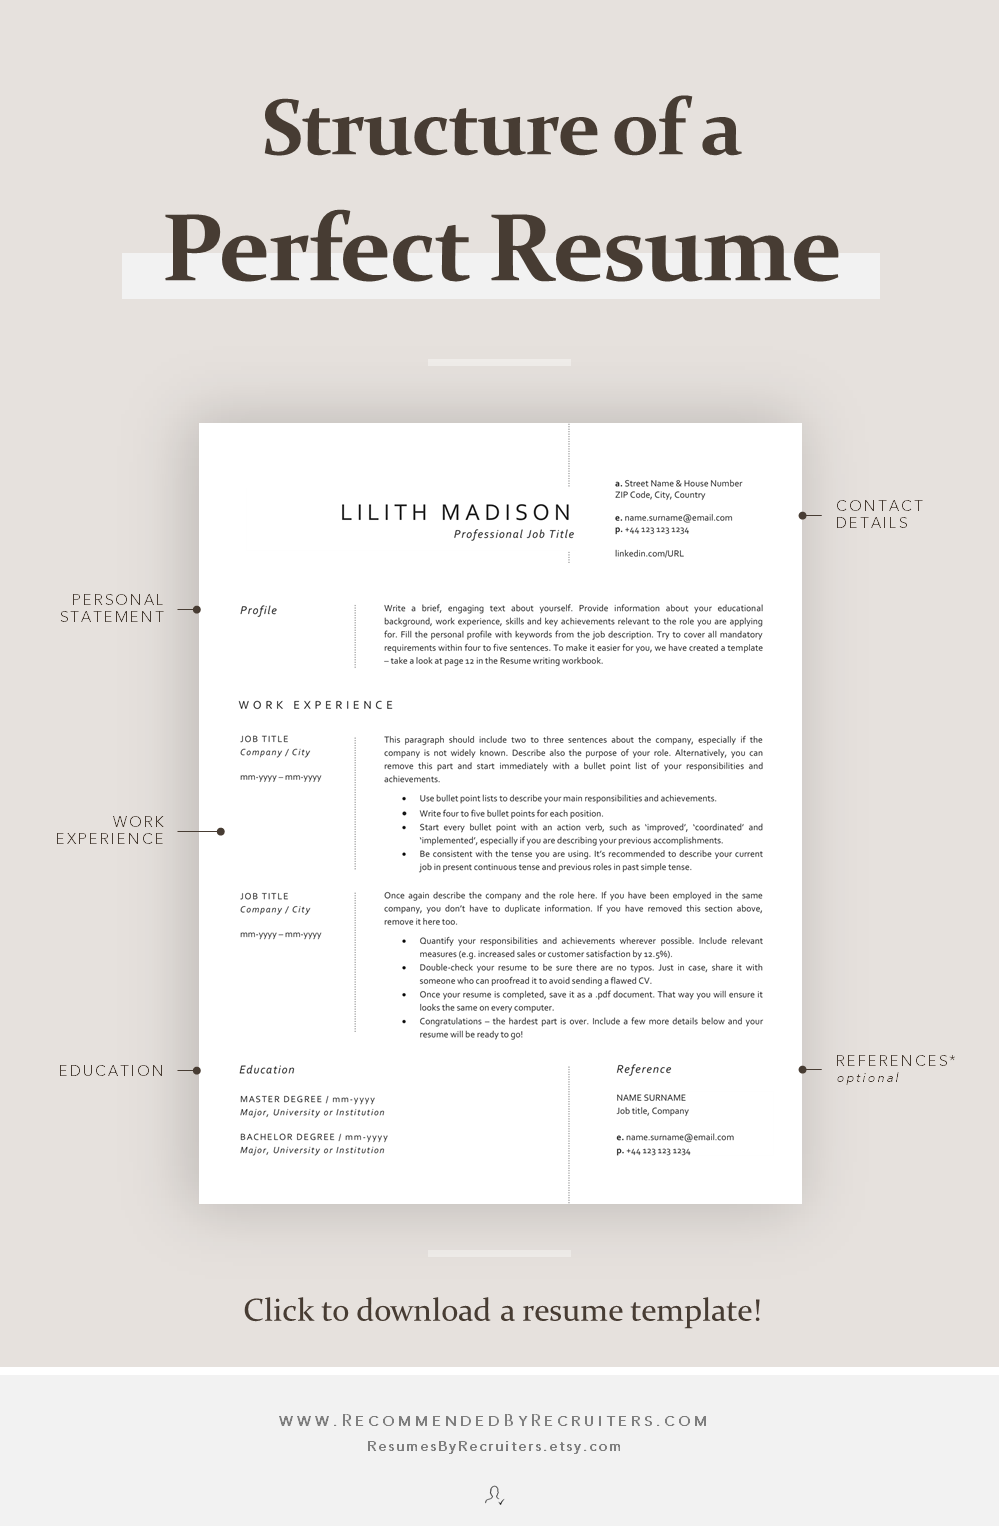 Structure of a Perfect Resume How to Structure CV Main Parts of a Resume Curriculum Vitae Advice